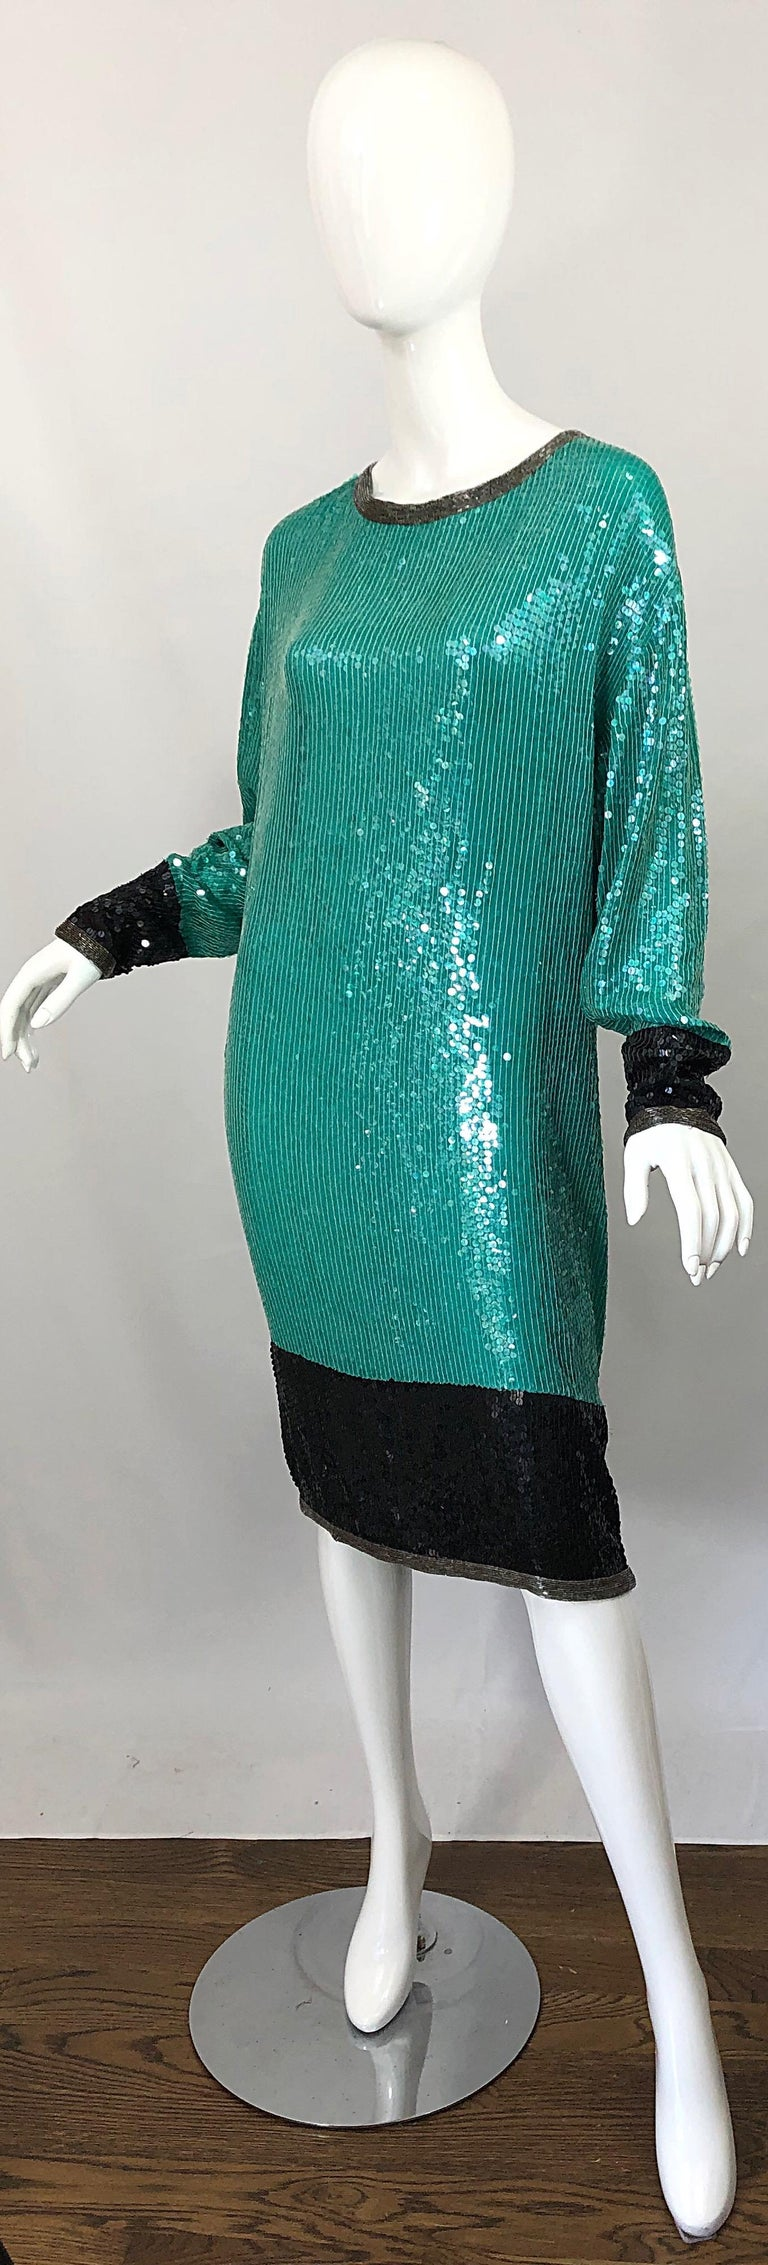 1970s HALSTON Teal Blue / Green + Black Sequined Beaded Dolman Sleeve Silk Dress For Sale 1